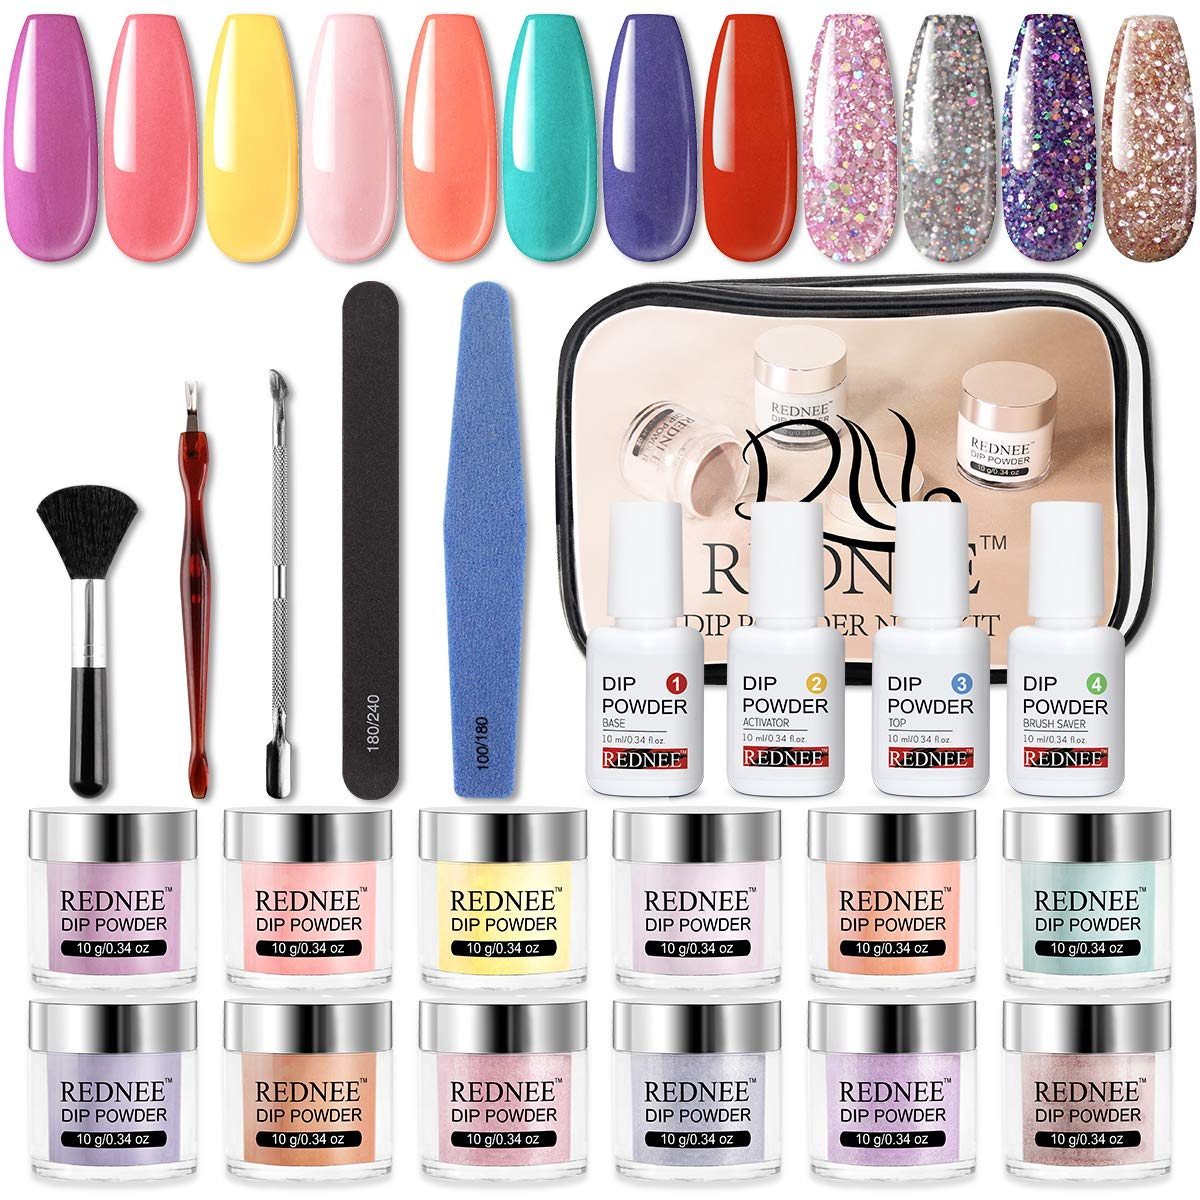 REDNEE 12+10 Dipping Powder Nail Starter Kit 12 Colors 10 Tools No Nail Lamp Needed Portable Kit for Travel - RE09 Rainbow Color